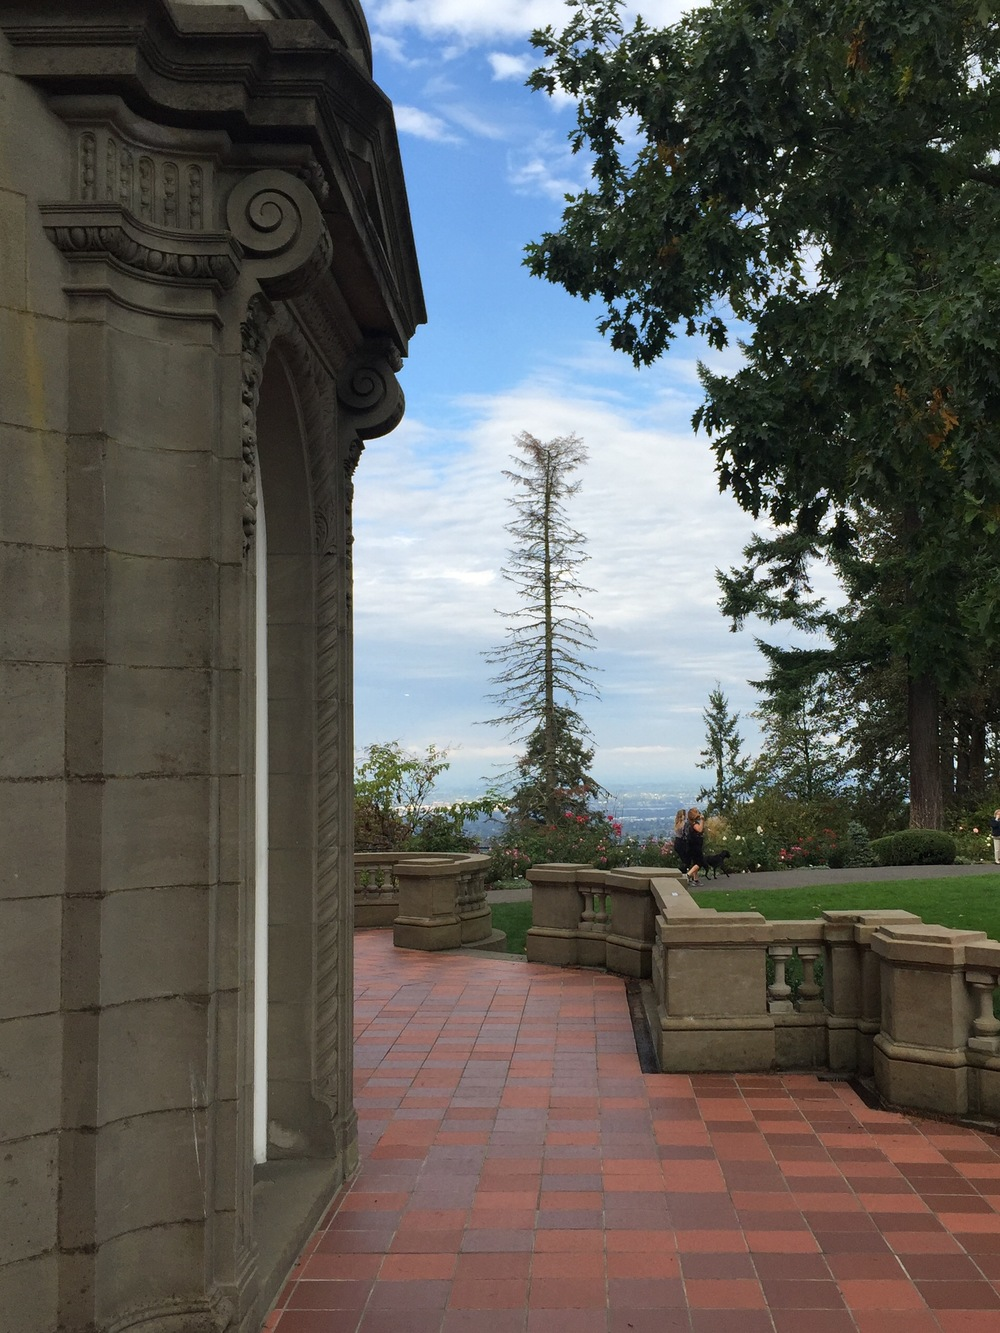 Fig 3. Pittock Mansion, Scroll Brackets in Profile, Photo by Author